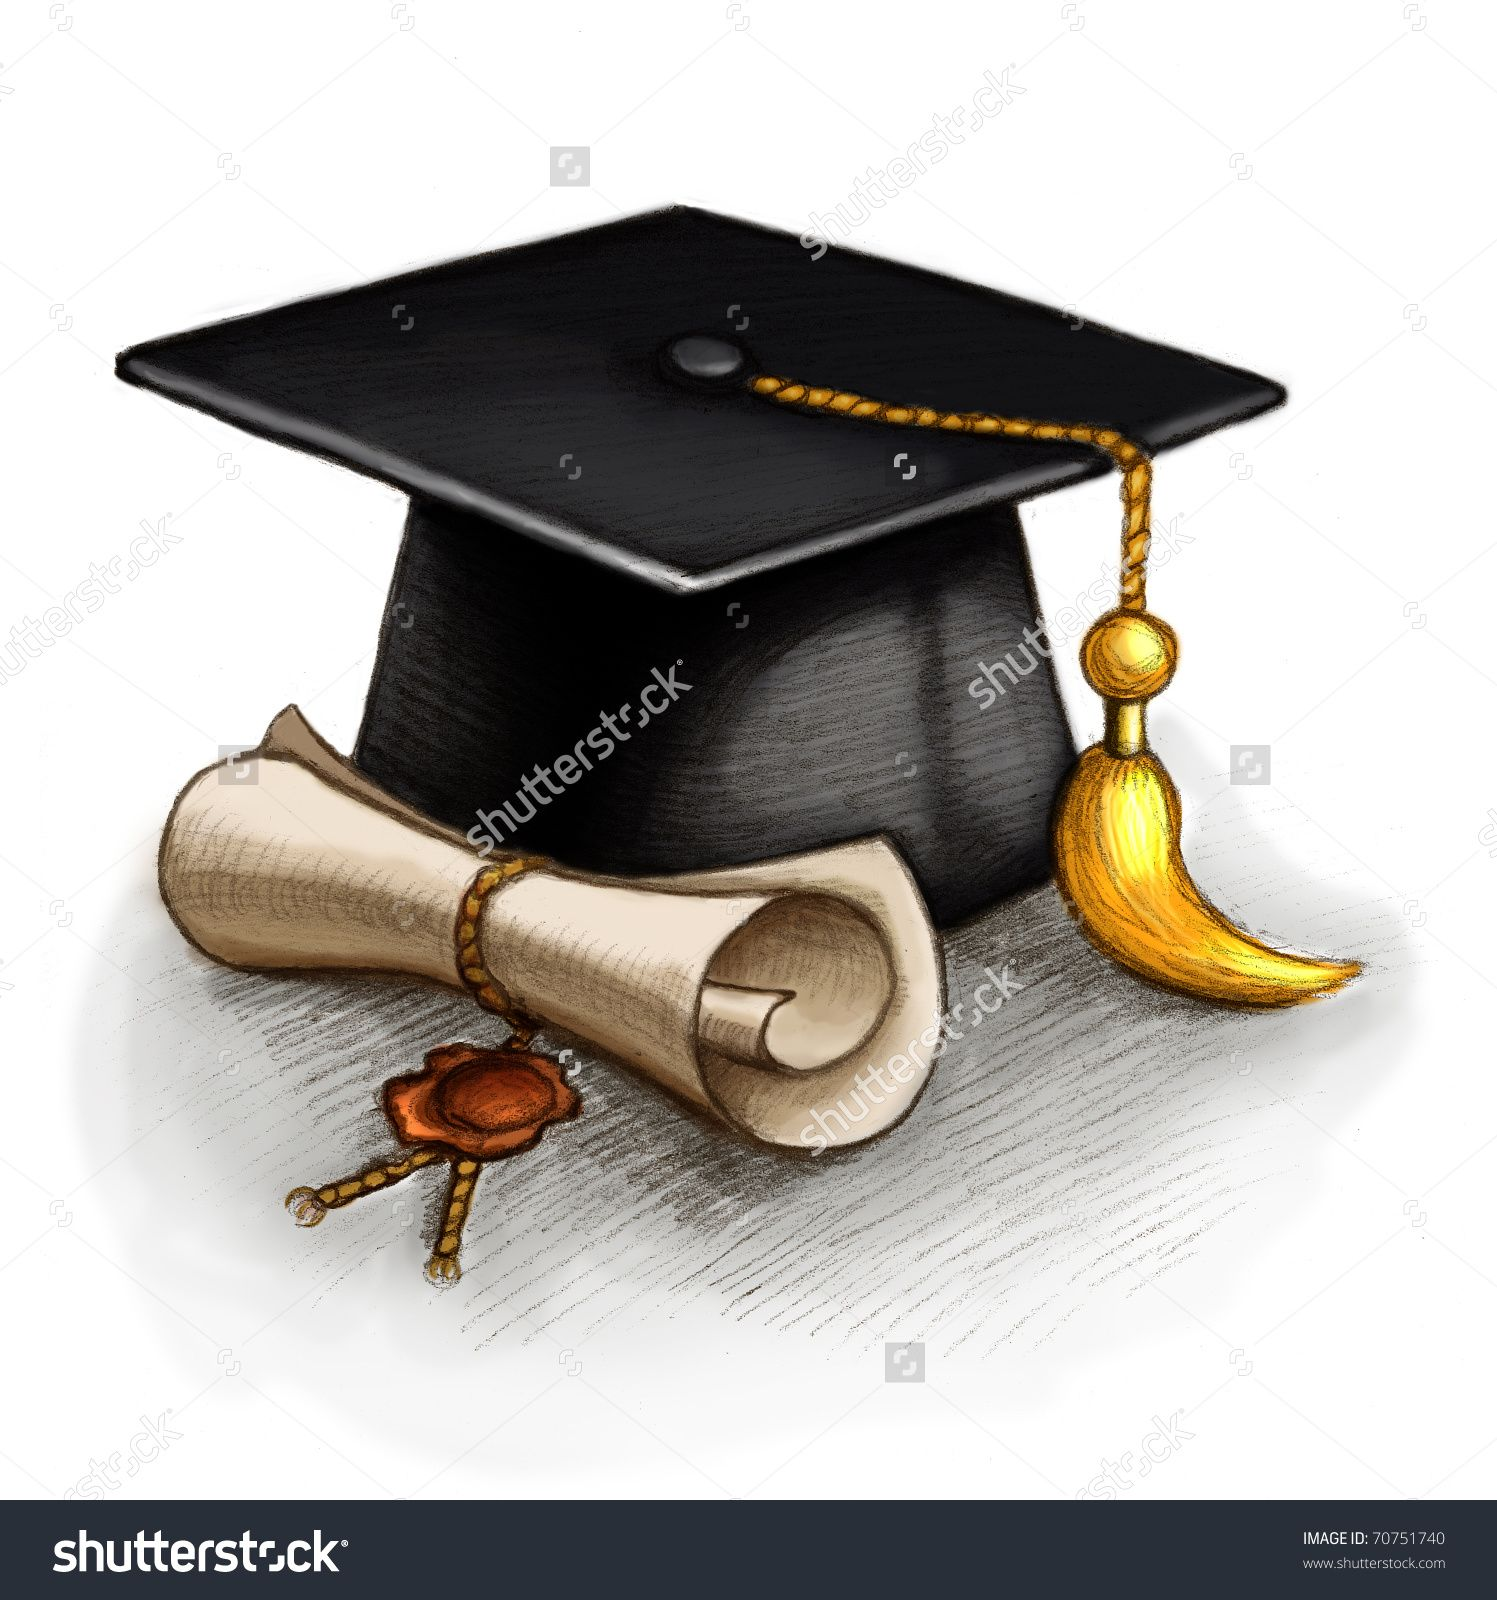 Pics photos how to draw a graduation hat - Drawing Of Graduation Cap And Diploma Stock Photo 70751740